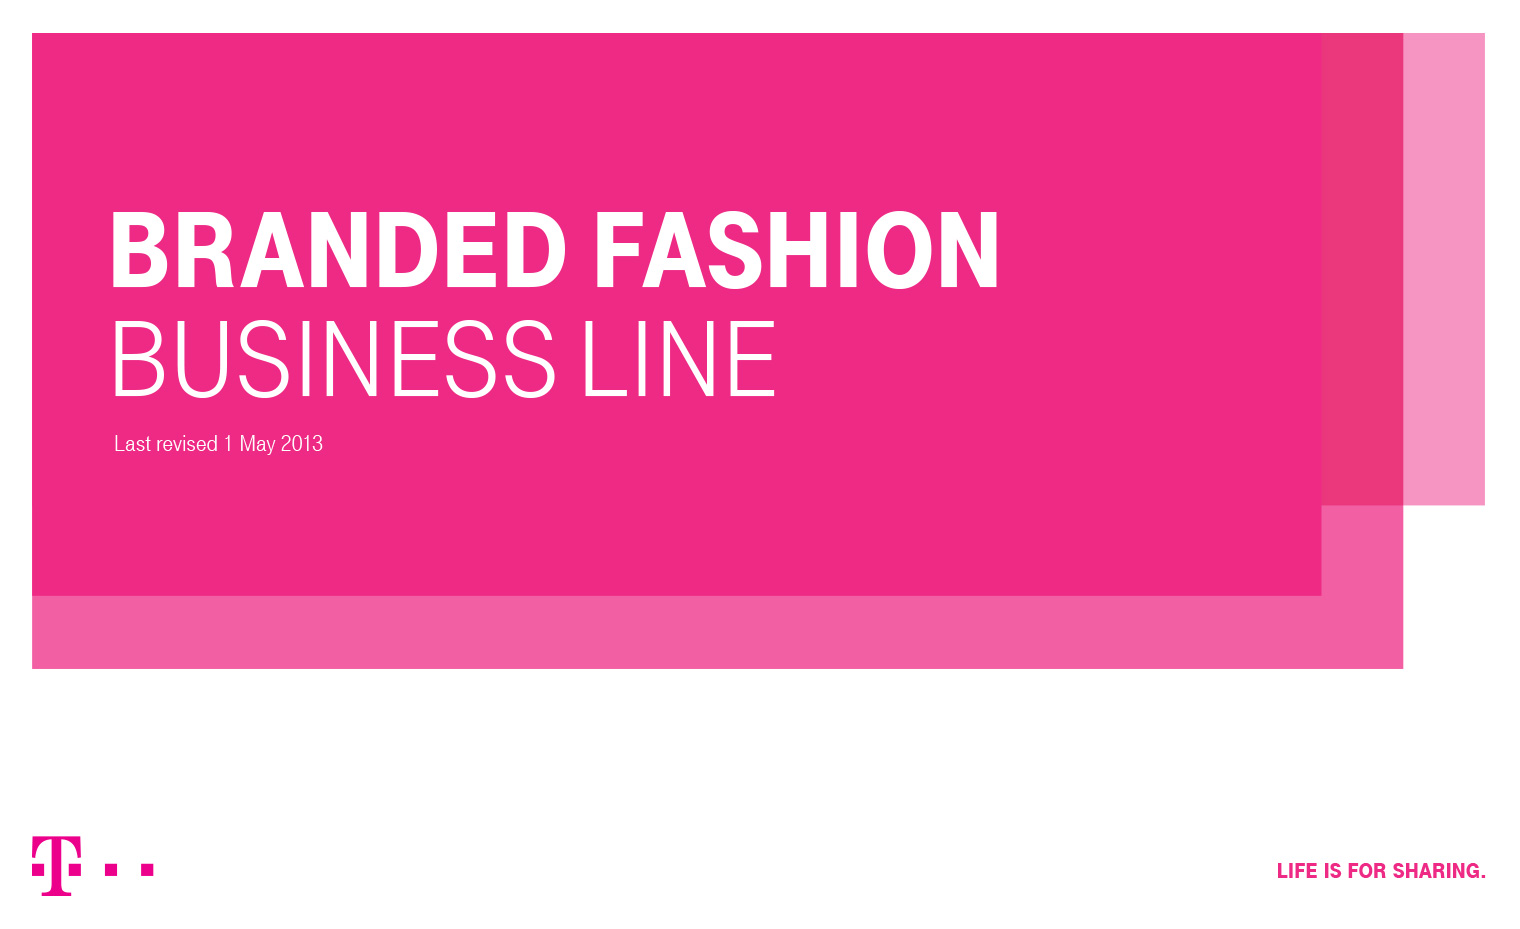 field-guideline-branded-fashion-business-line-style-guide-deutsche-telekom-tmobile